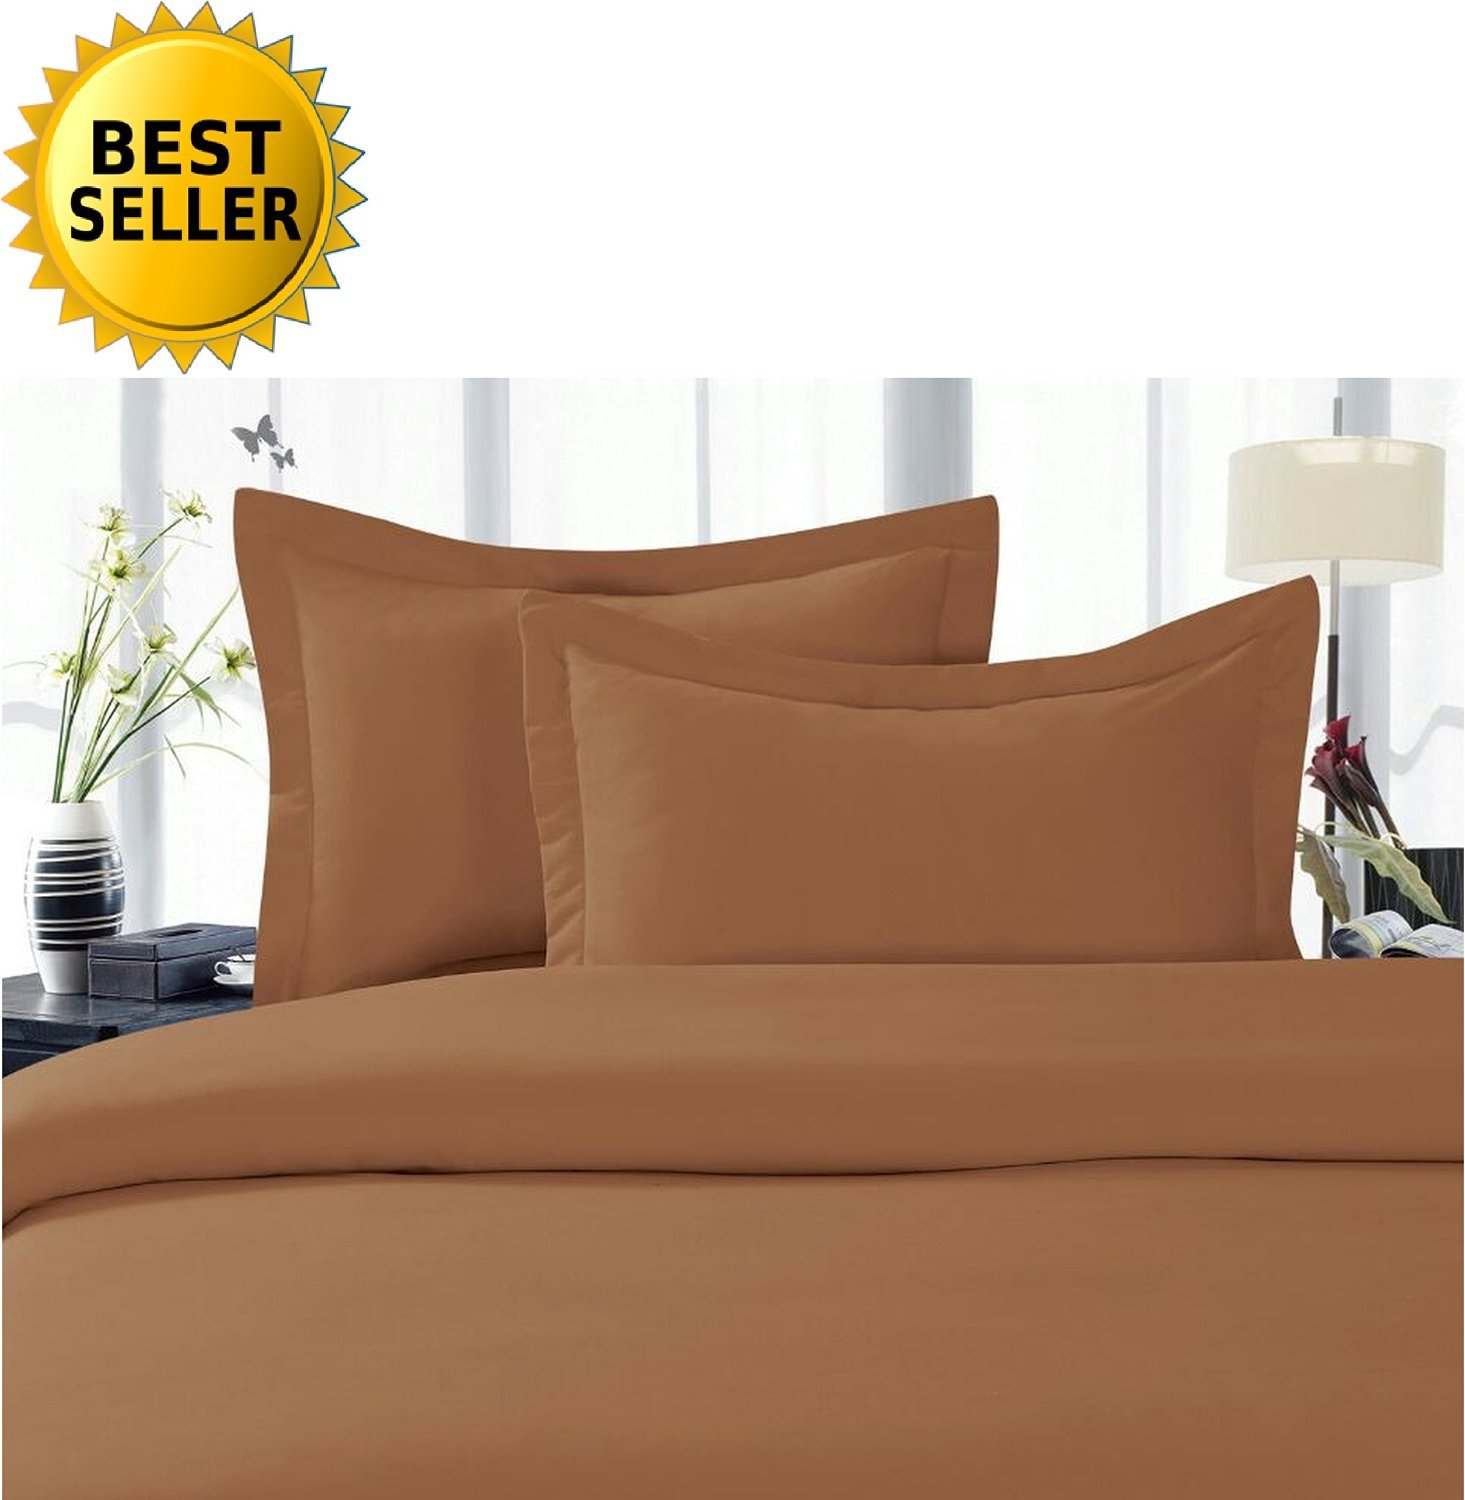 Celine LinenBest, Softest, Coziest Duvet Cover Ever! 1500 Thread Count Egyptian Quality Luxury Super Soft Wrinkle Free 3-Piece Duvet Cover Set, King